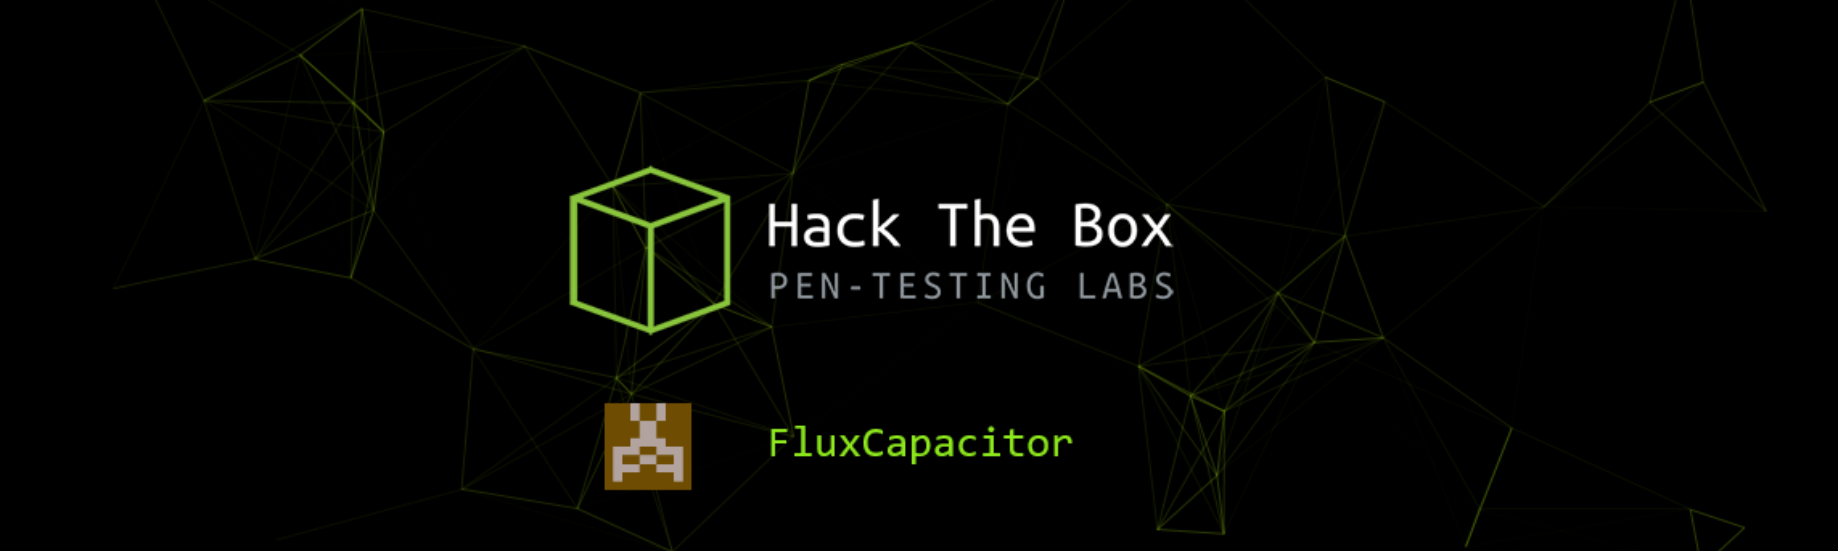 Hack the Box} \\ FluxCapacitor Write-Up - secjuice™ - Medium